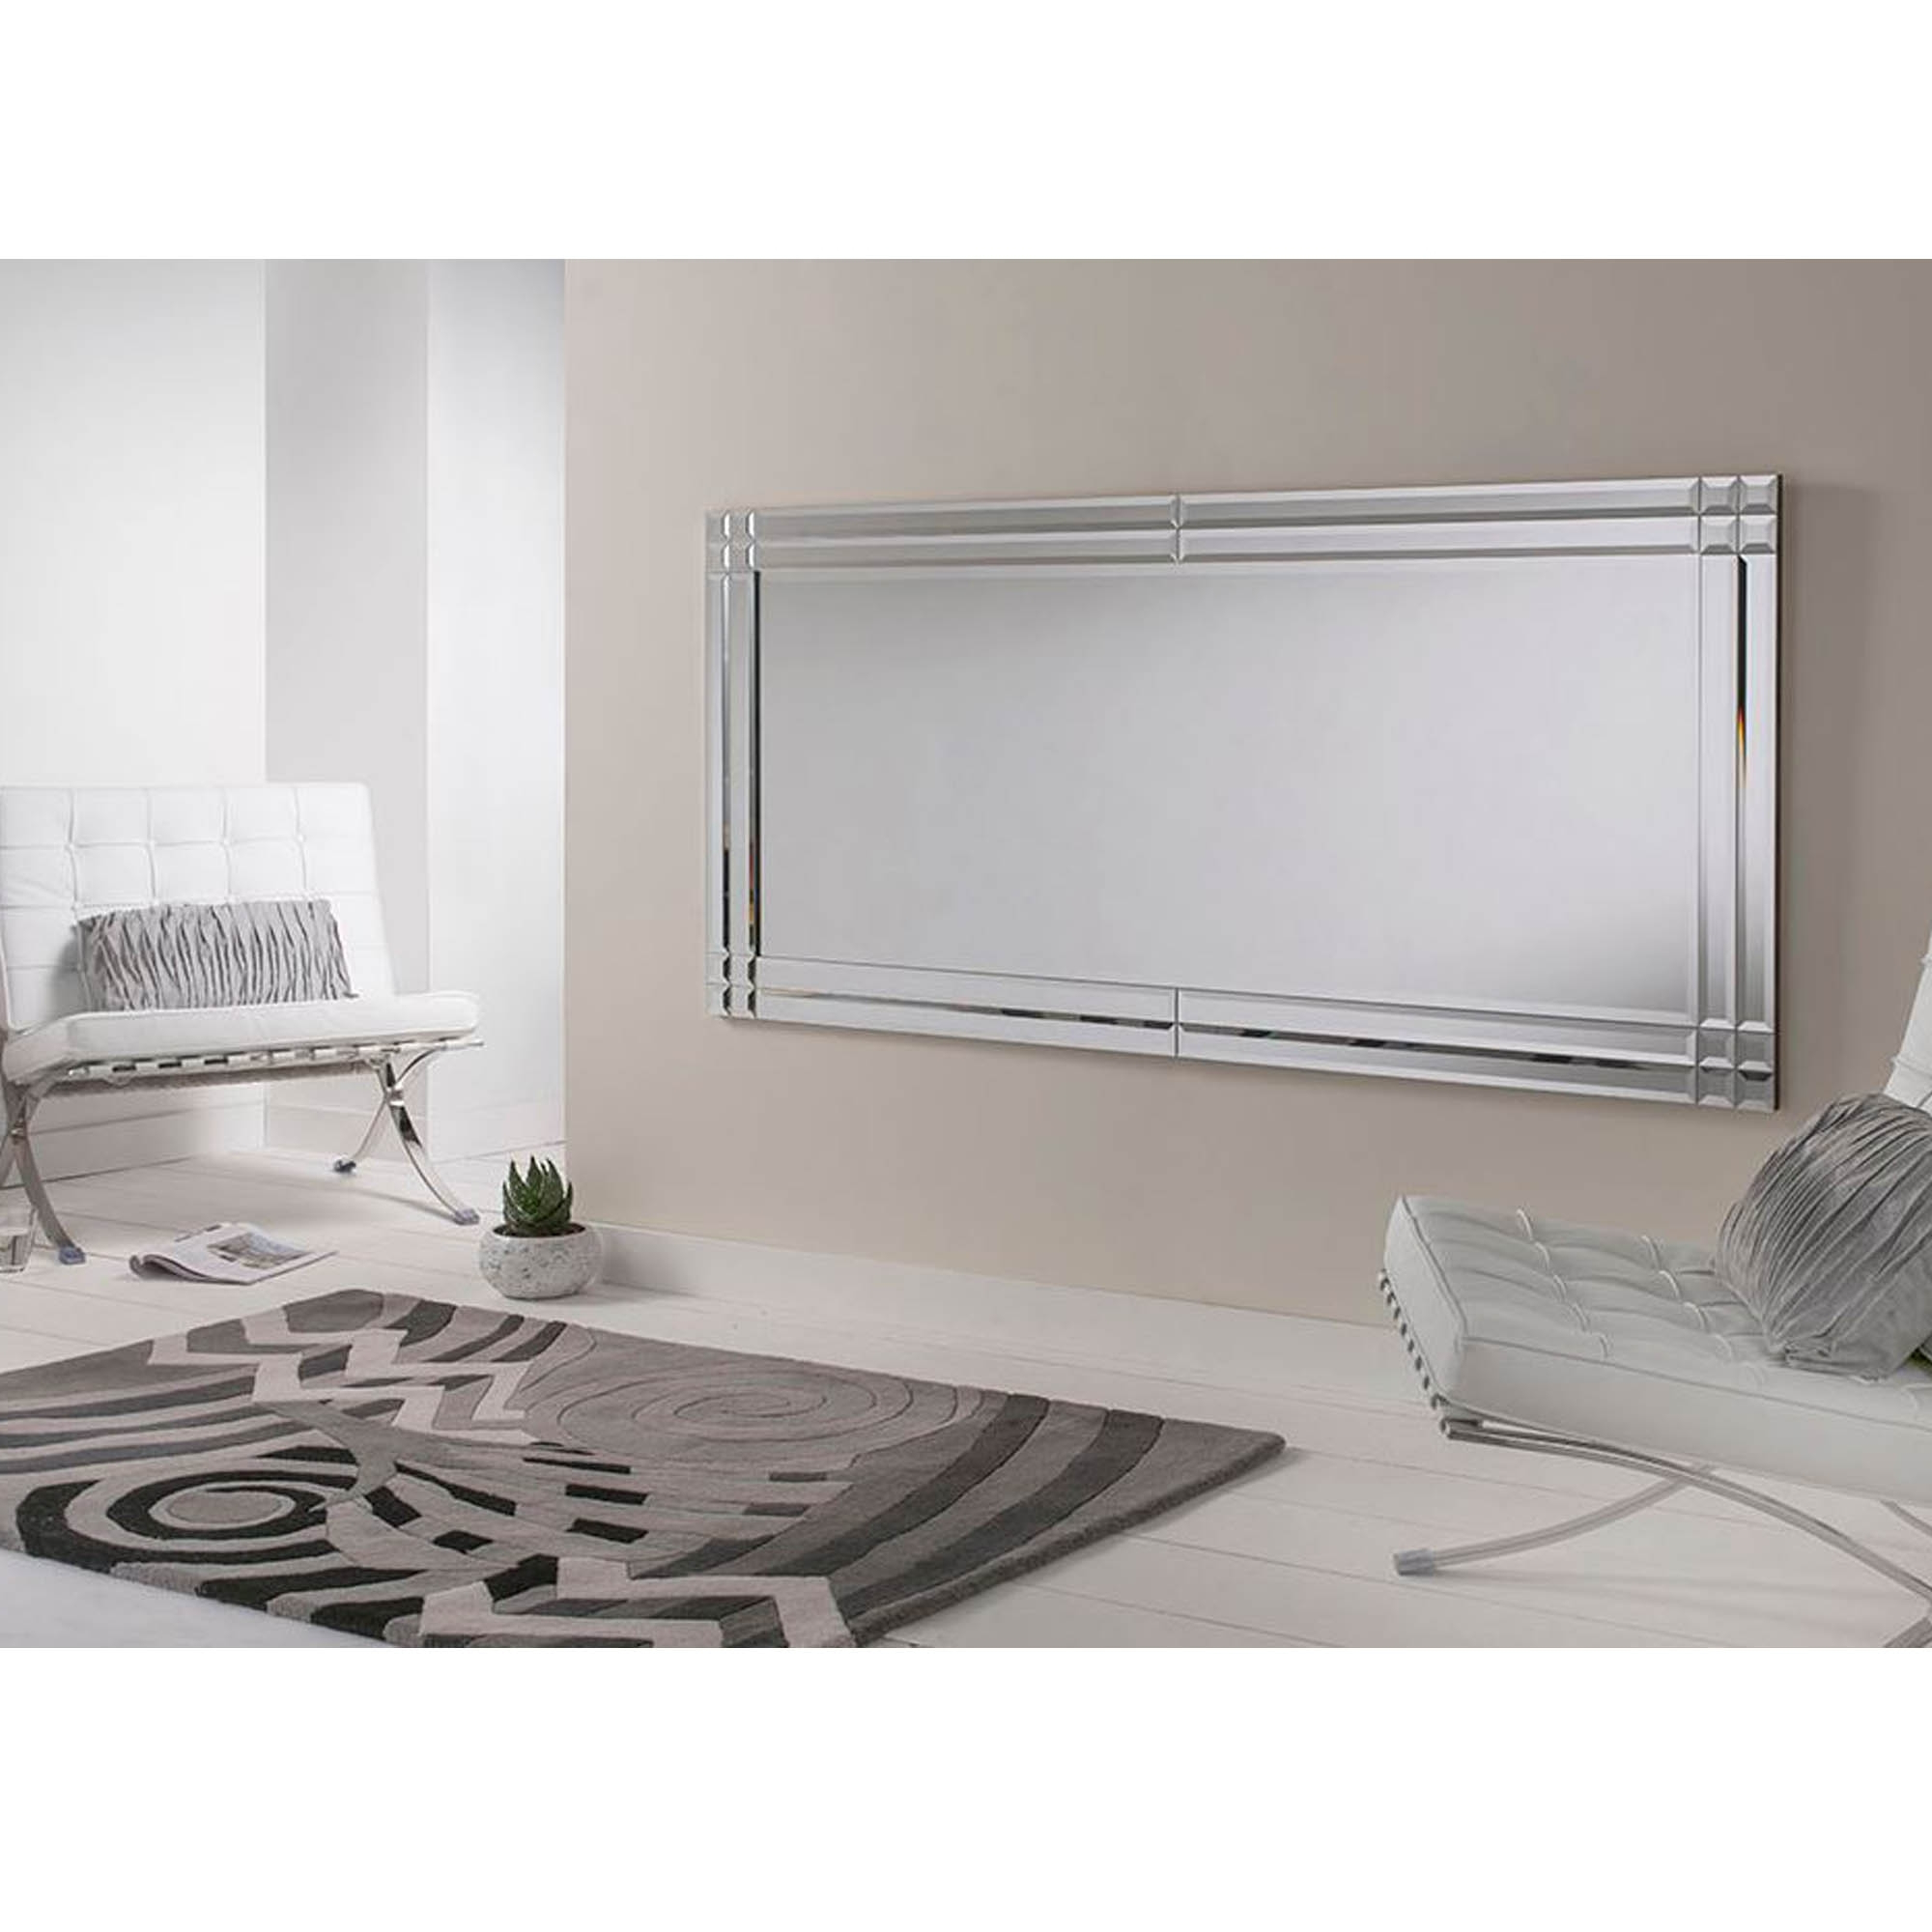 Fashionable Gorgeous Long Glass Wall Mirror Bevelled Silver Mirrored In Long Wall Mirrors For Bedroom (View 6 of 20)